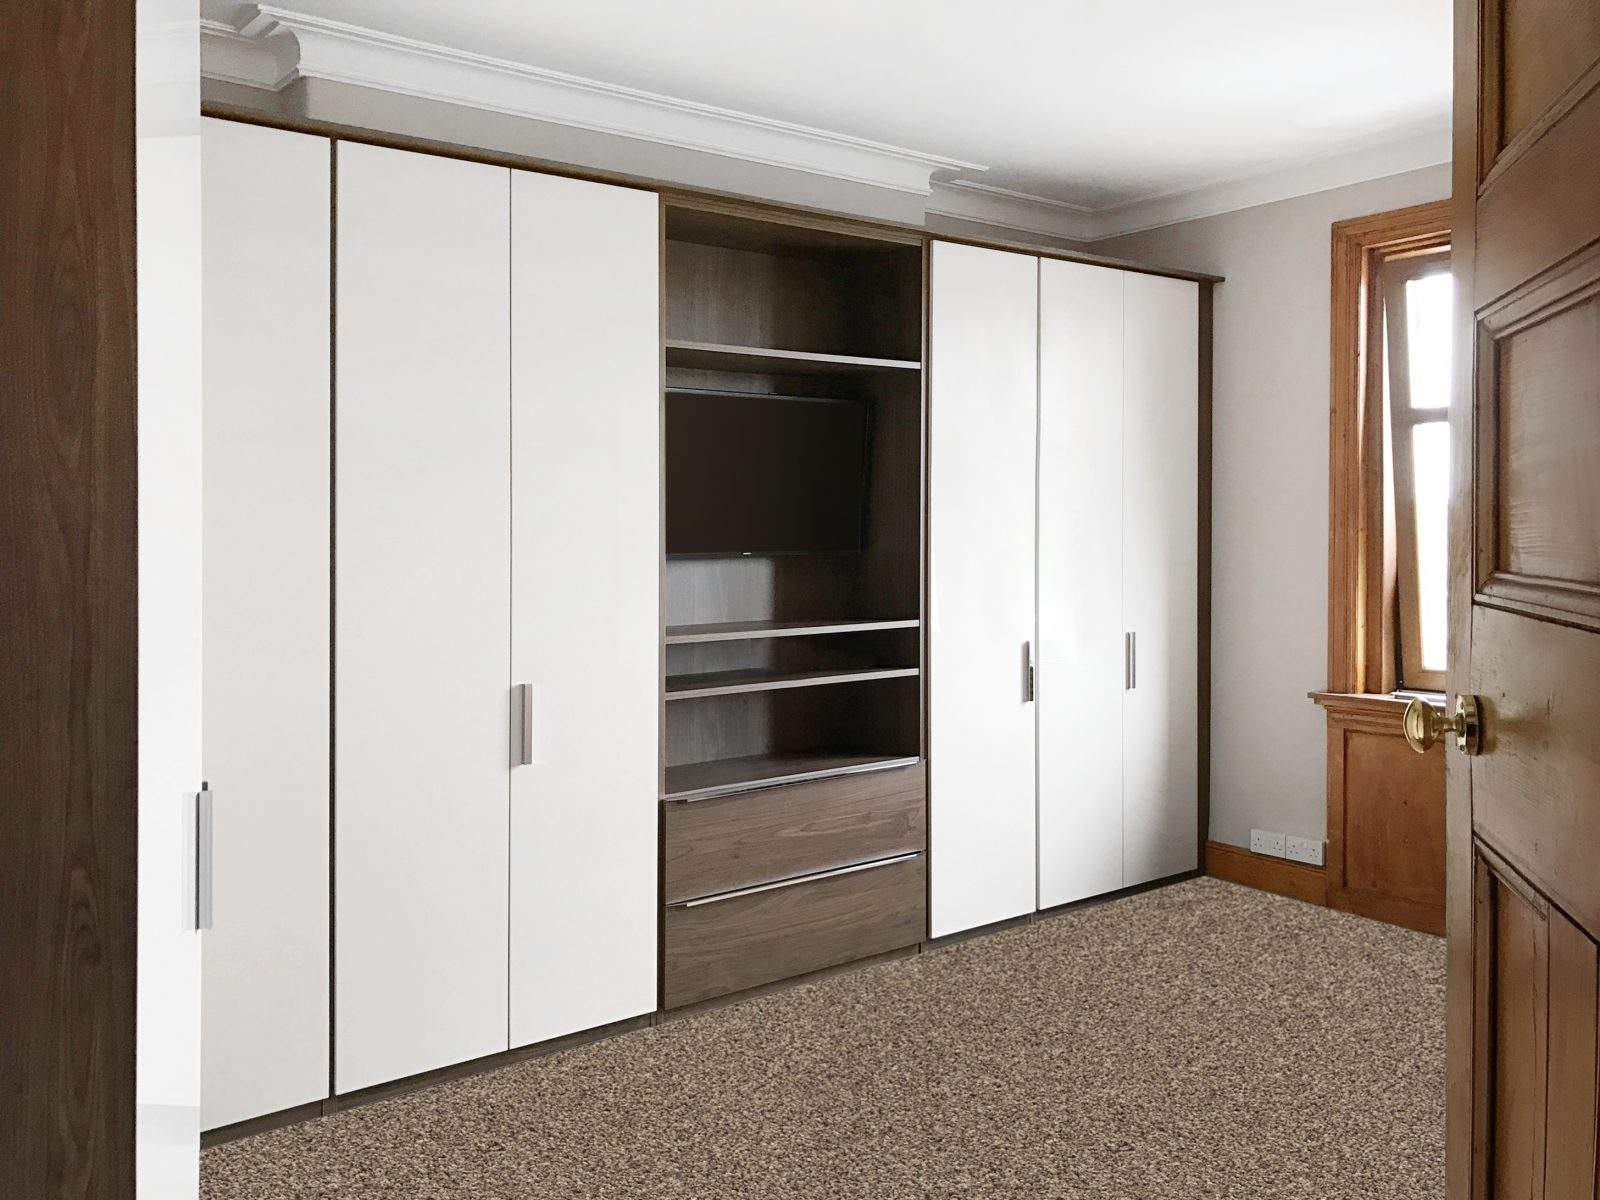 Bespoke fitted wardrobes around a chimney breast in edinburgh Build your own bedroom wardrobes